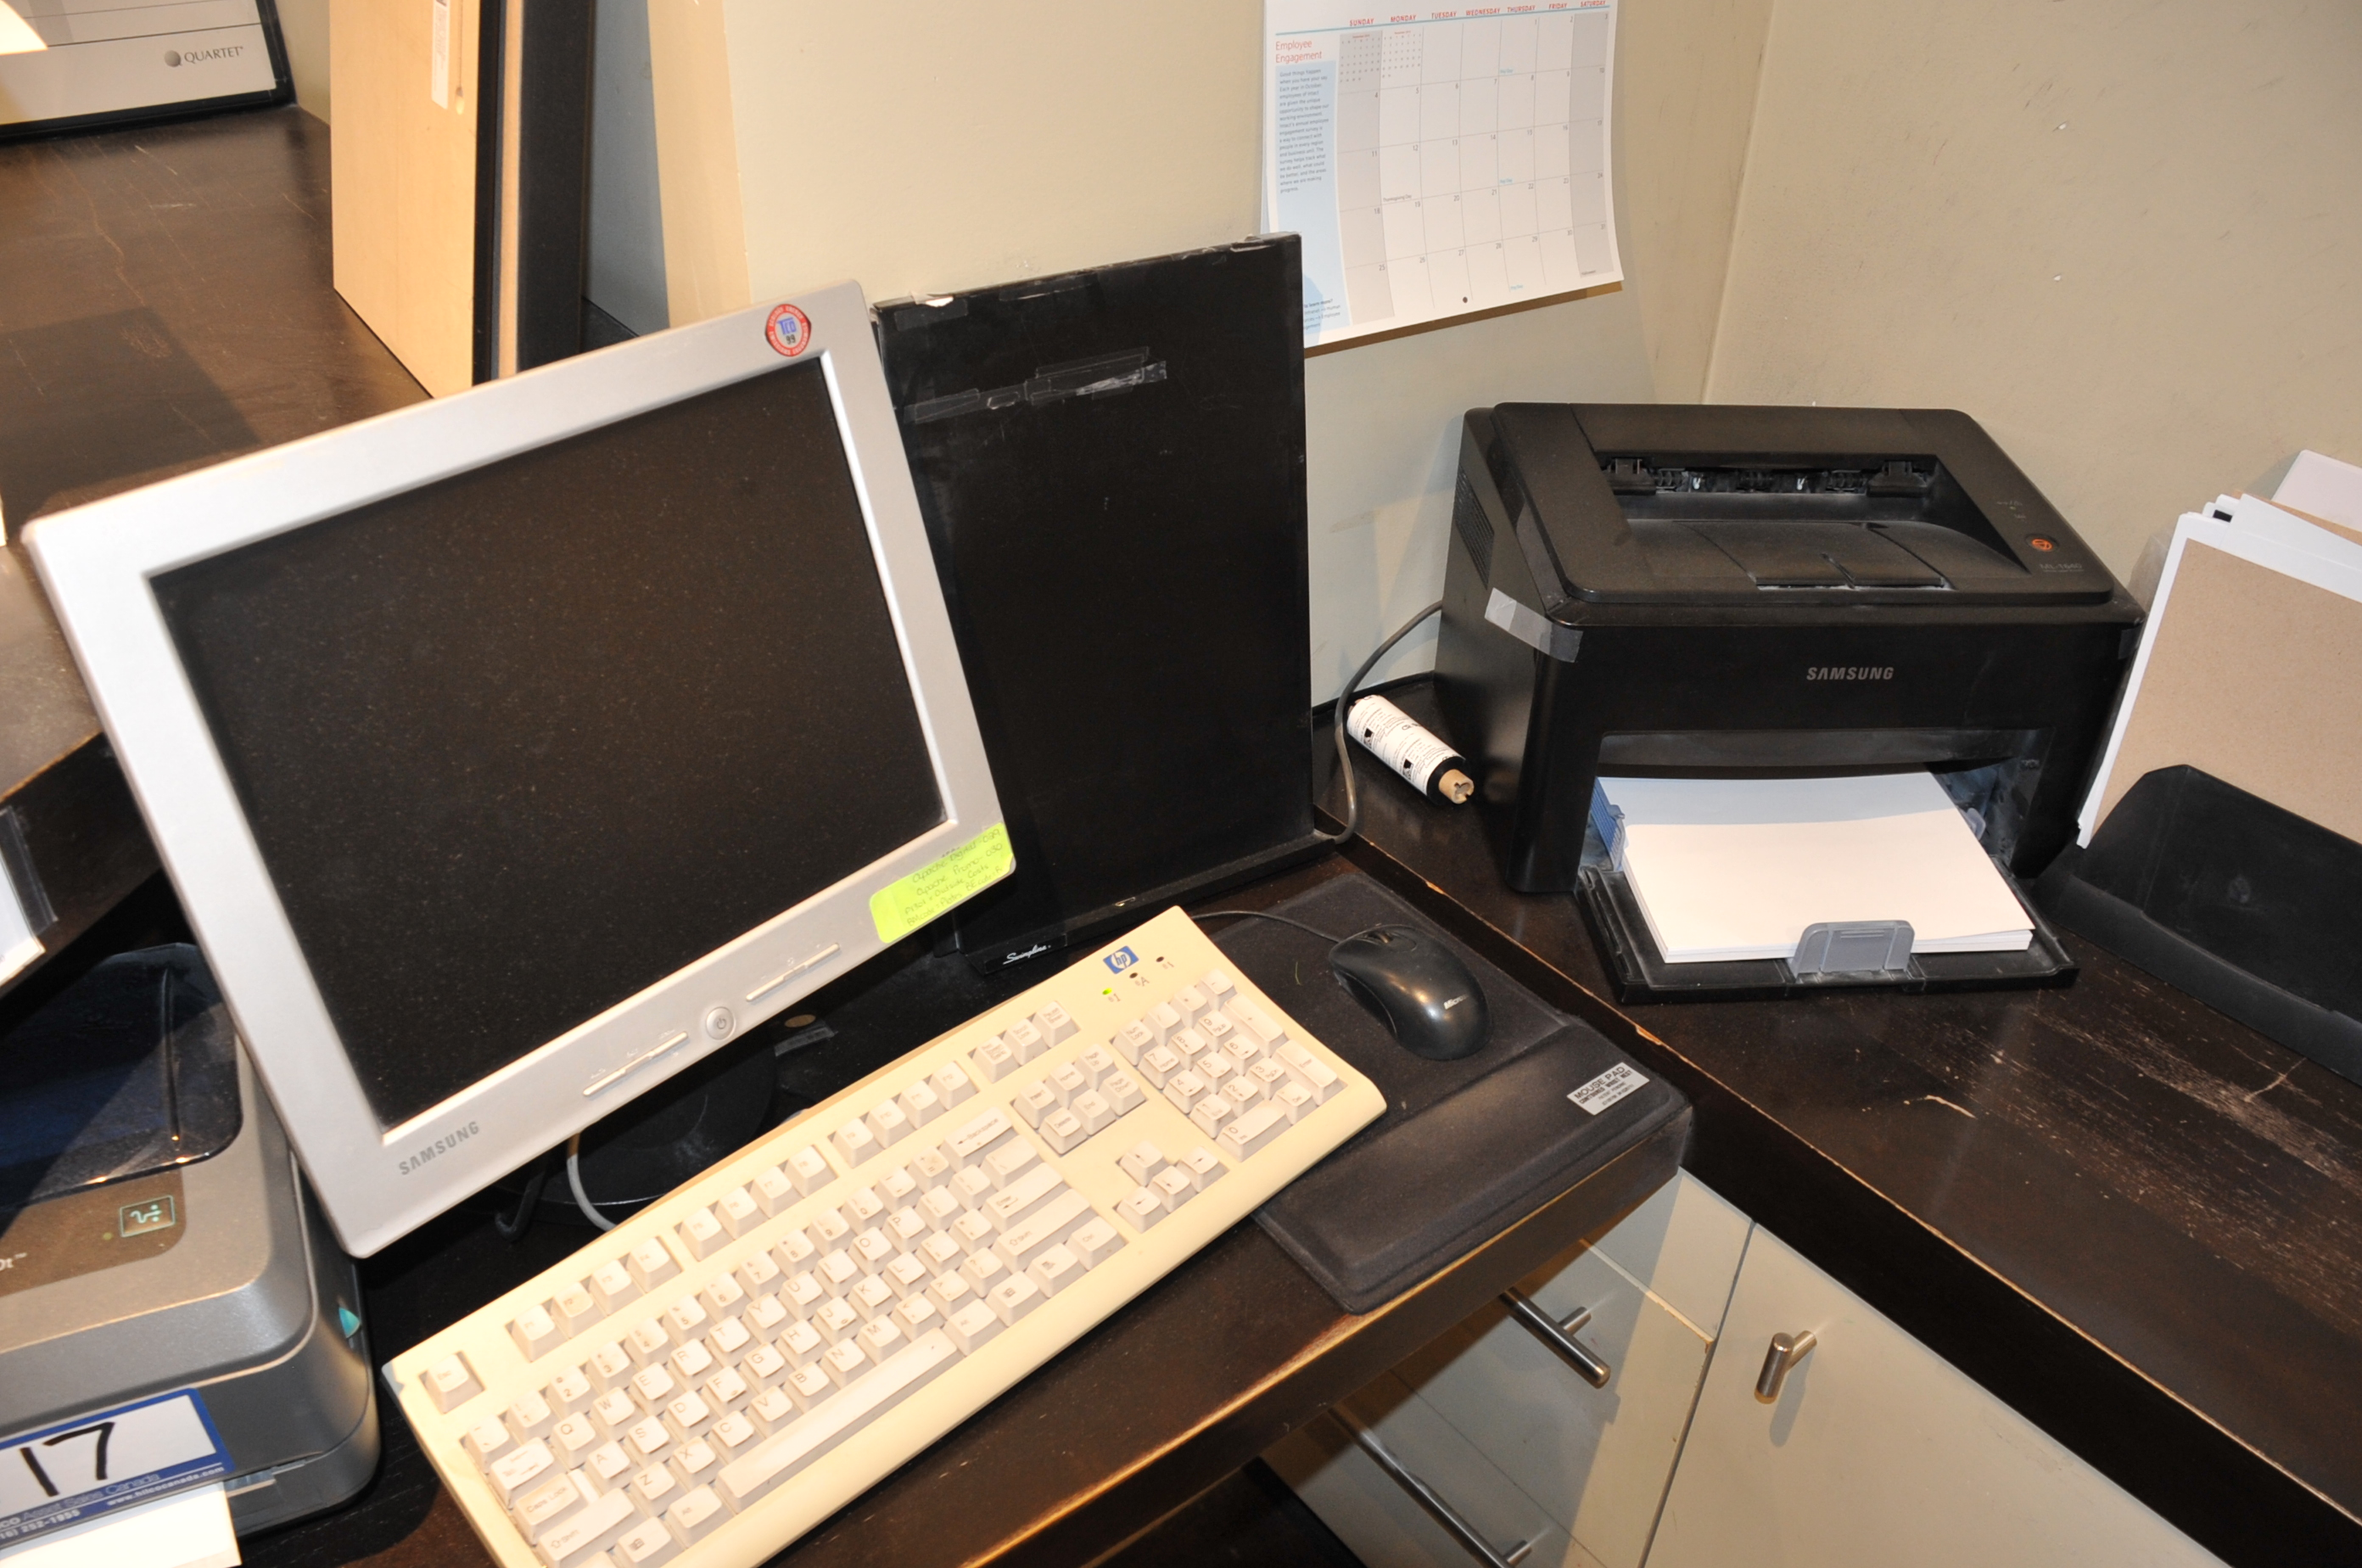 """Velocity Model Core 2 Duo Computer; with Saumsung 15"""" LCD Monitor, Samsung Printer - Image 2 of 2"""